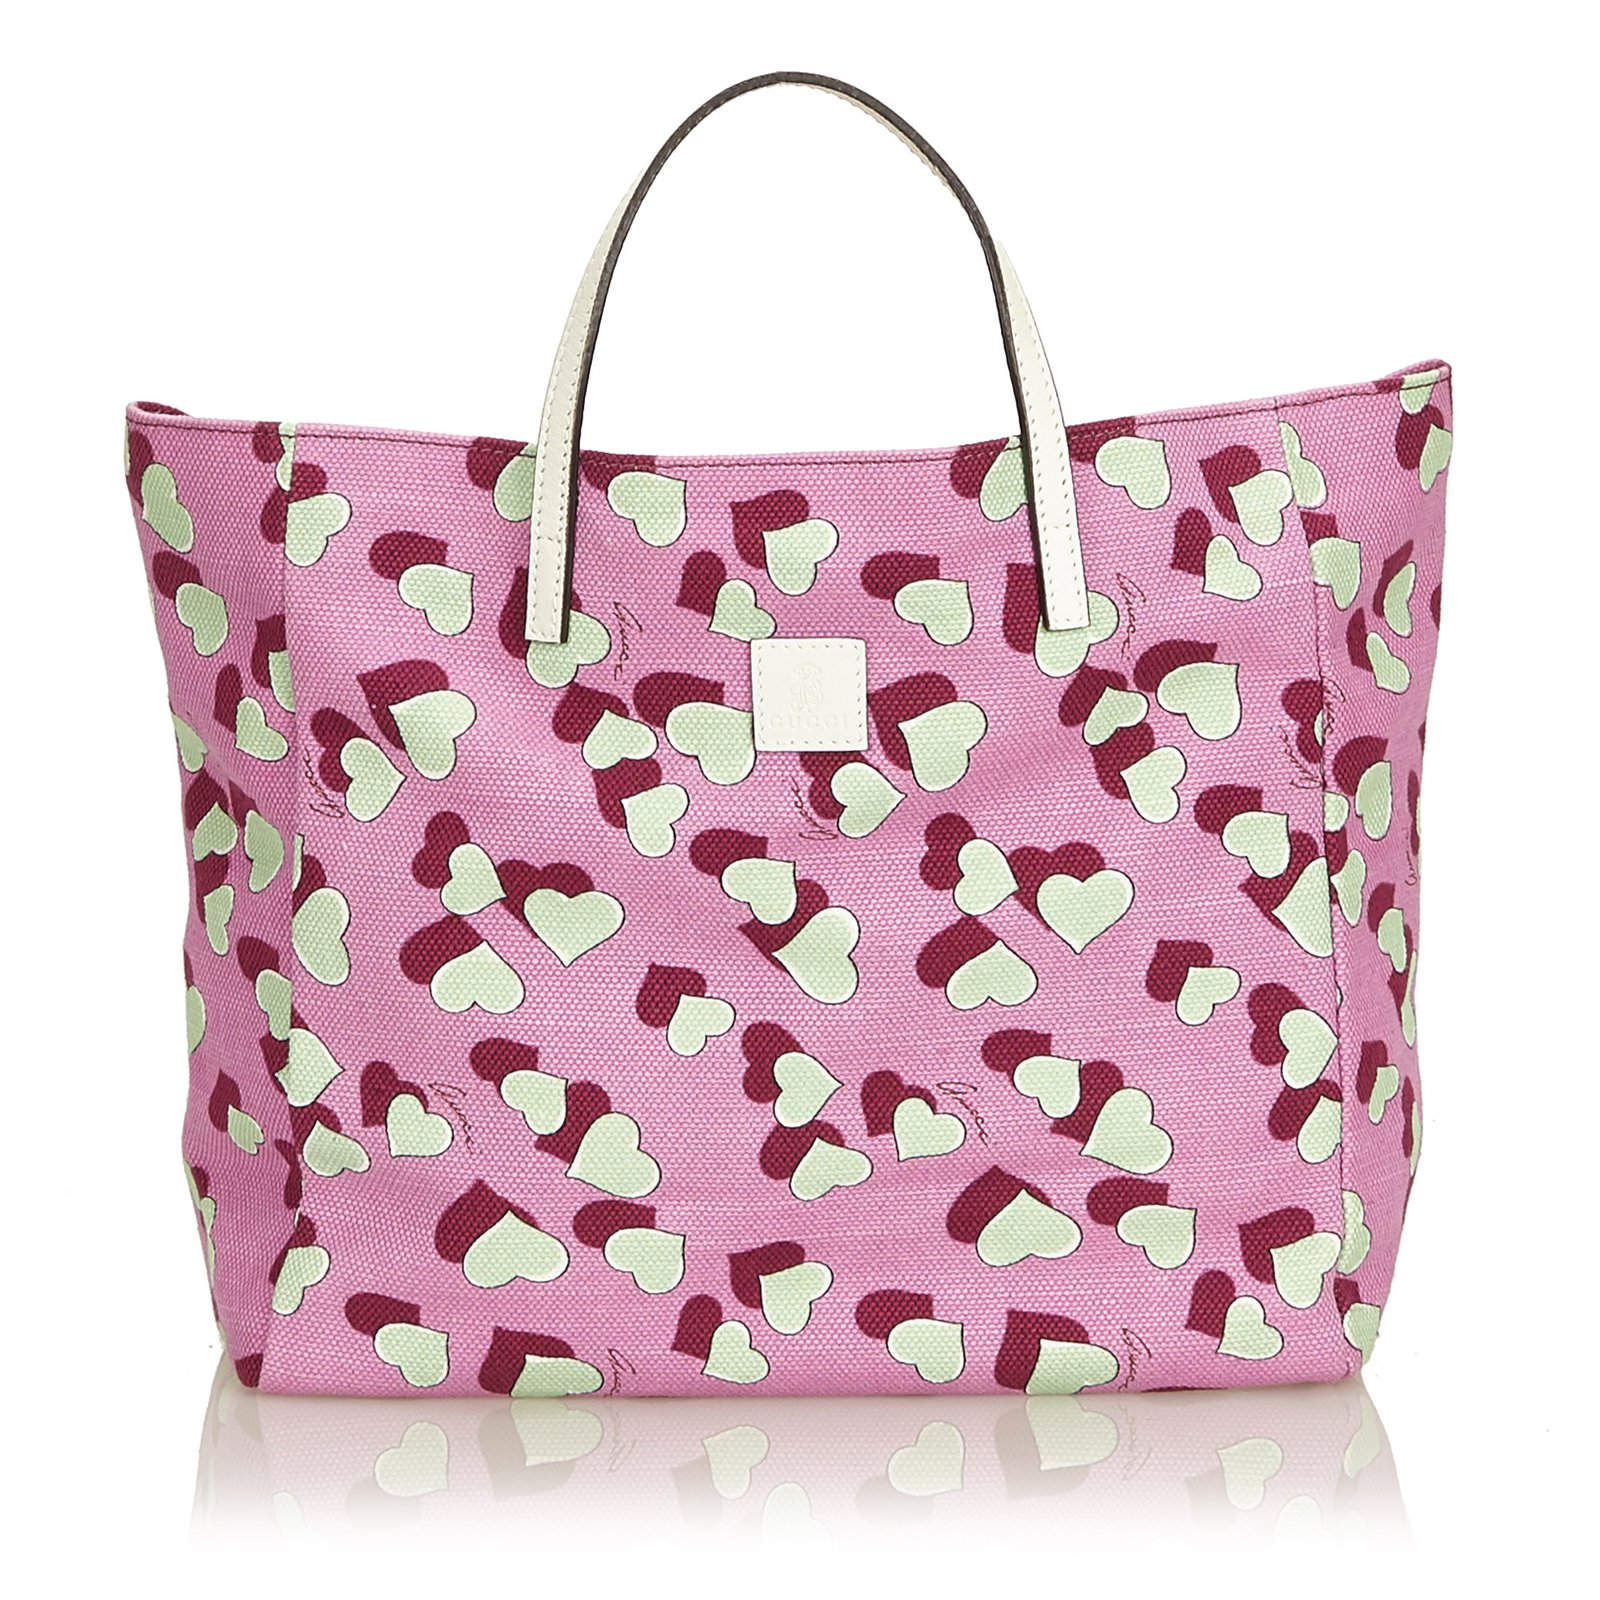 a51b03950915 Gucci Printed Canvas Tote Bag Totes Leather,Other,Cloth,Cloth Pink,Multiple